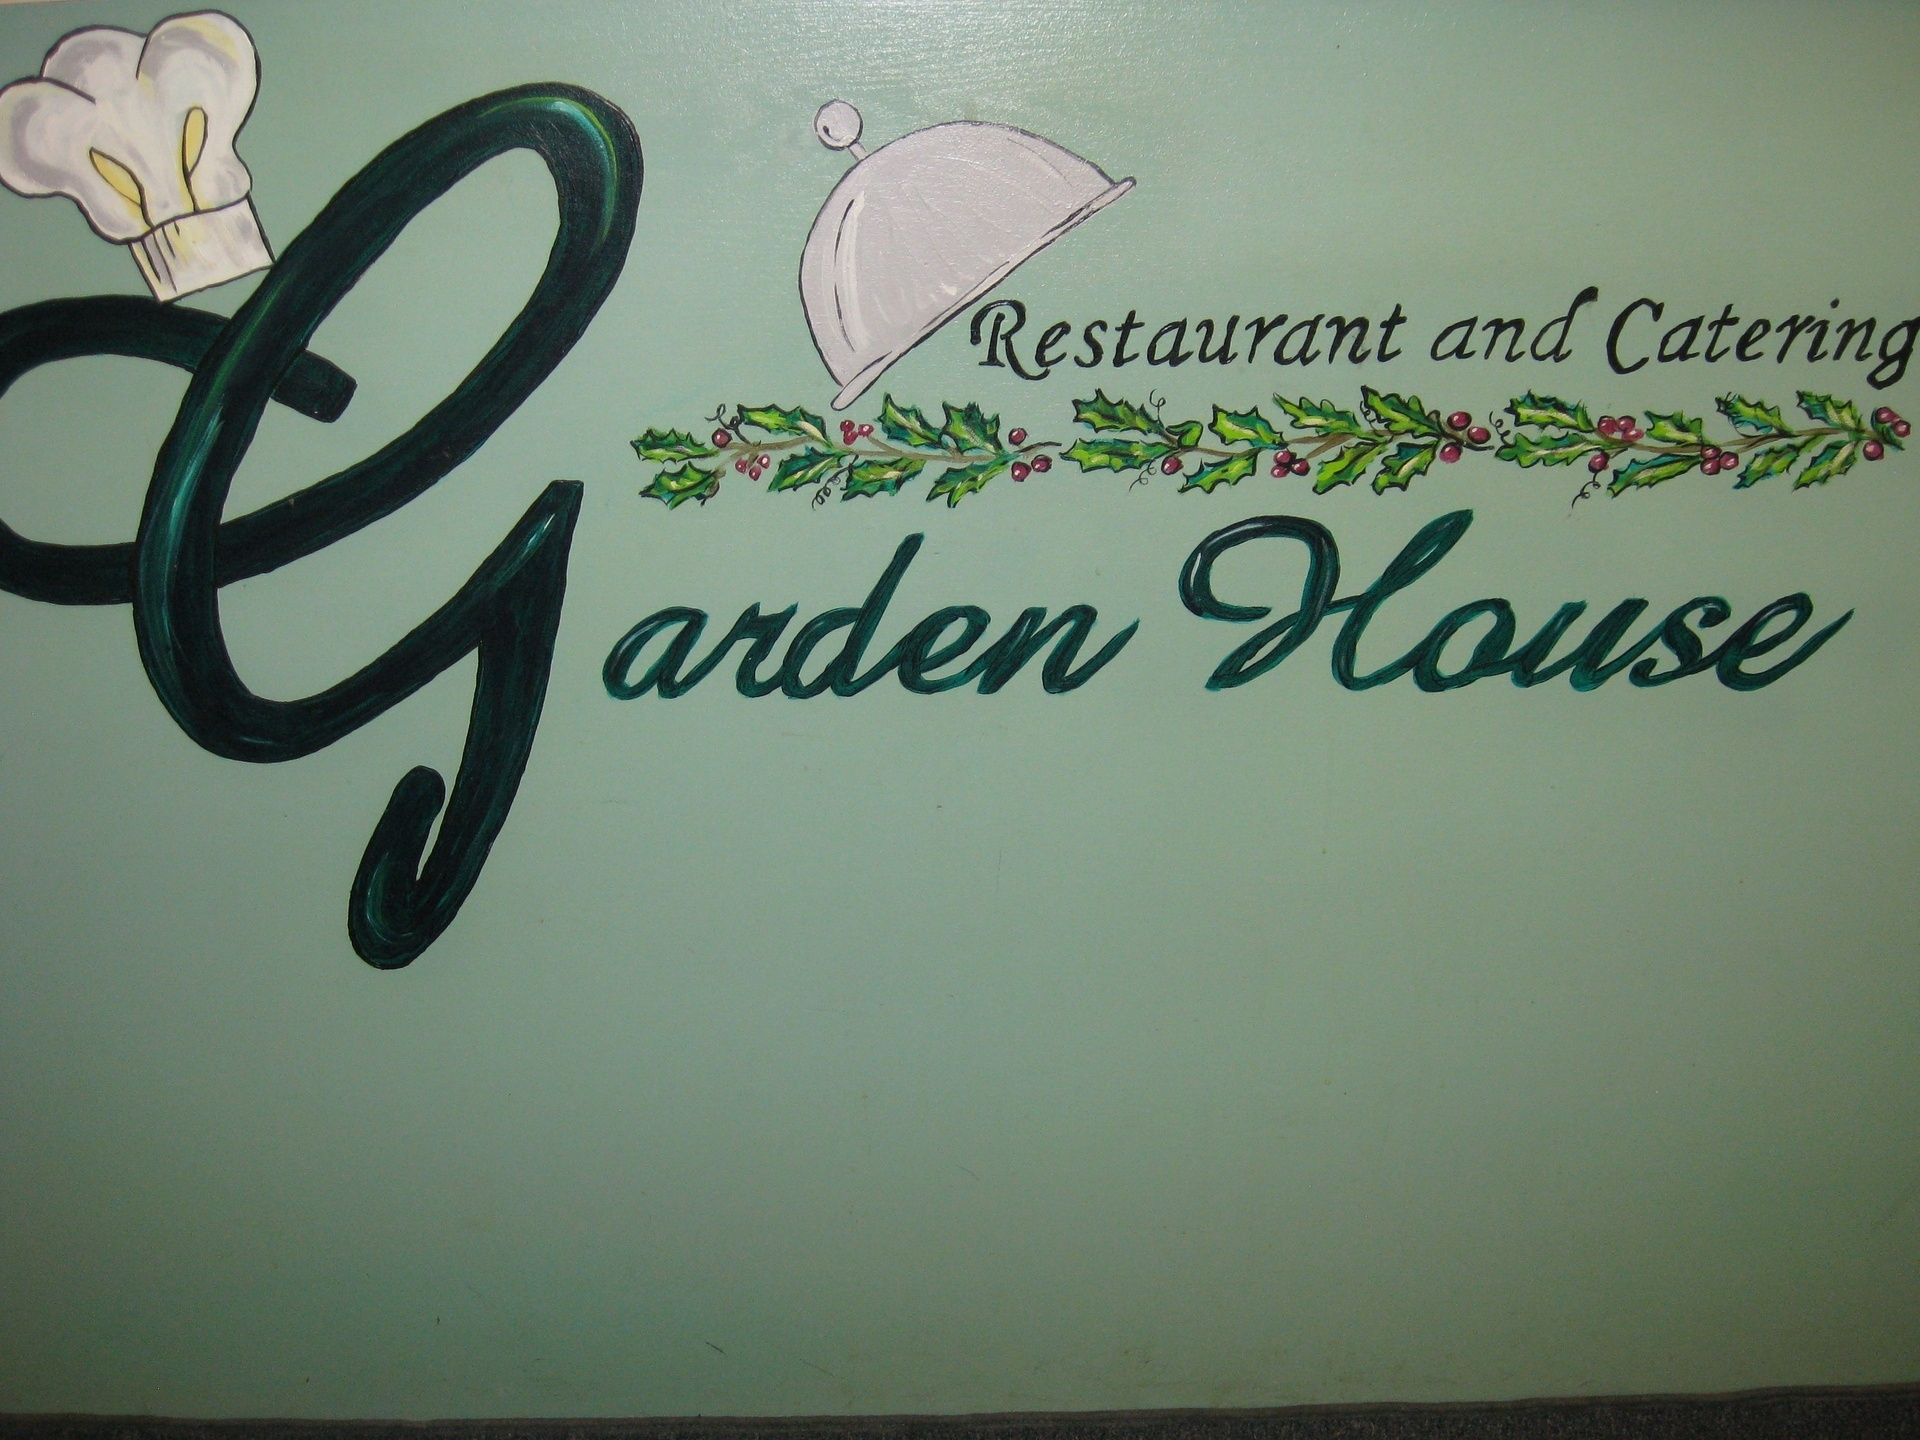 Garden House Restaurant & Catering throughout Garden House Restaurant And Catering